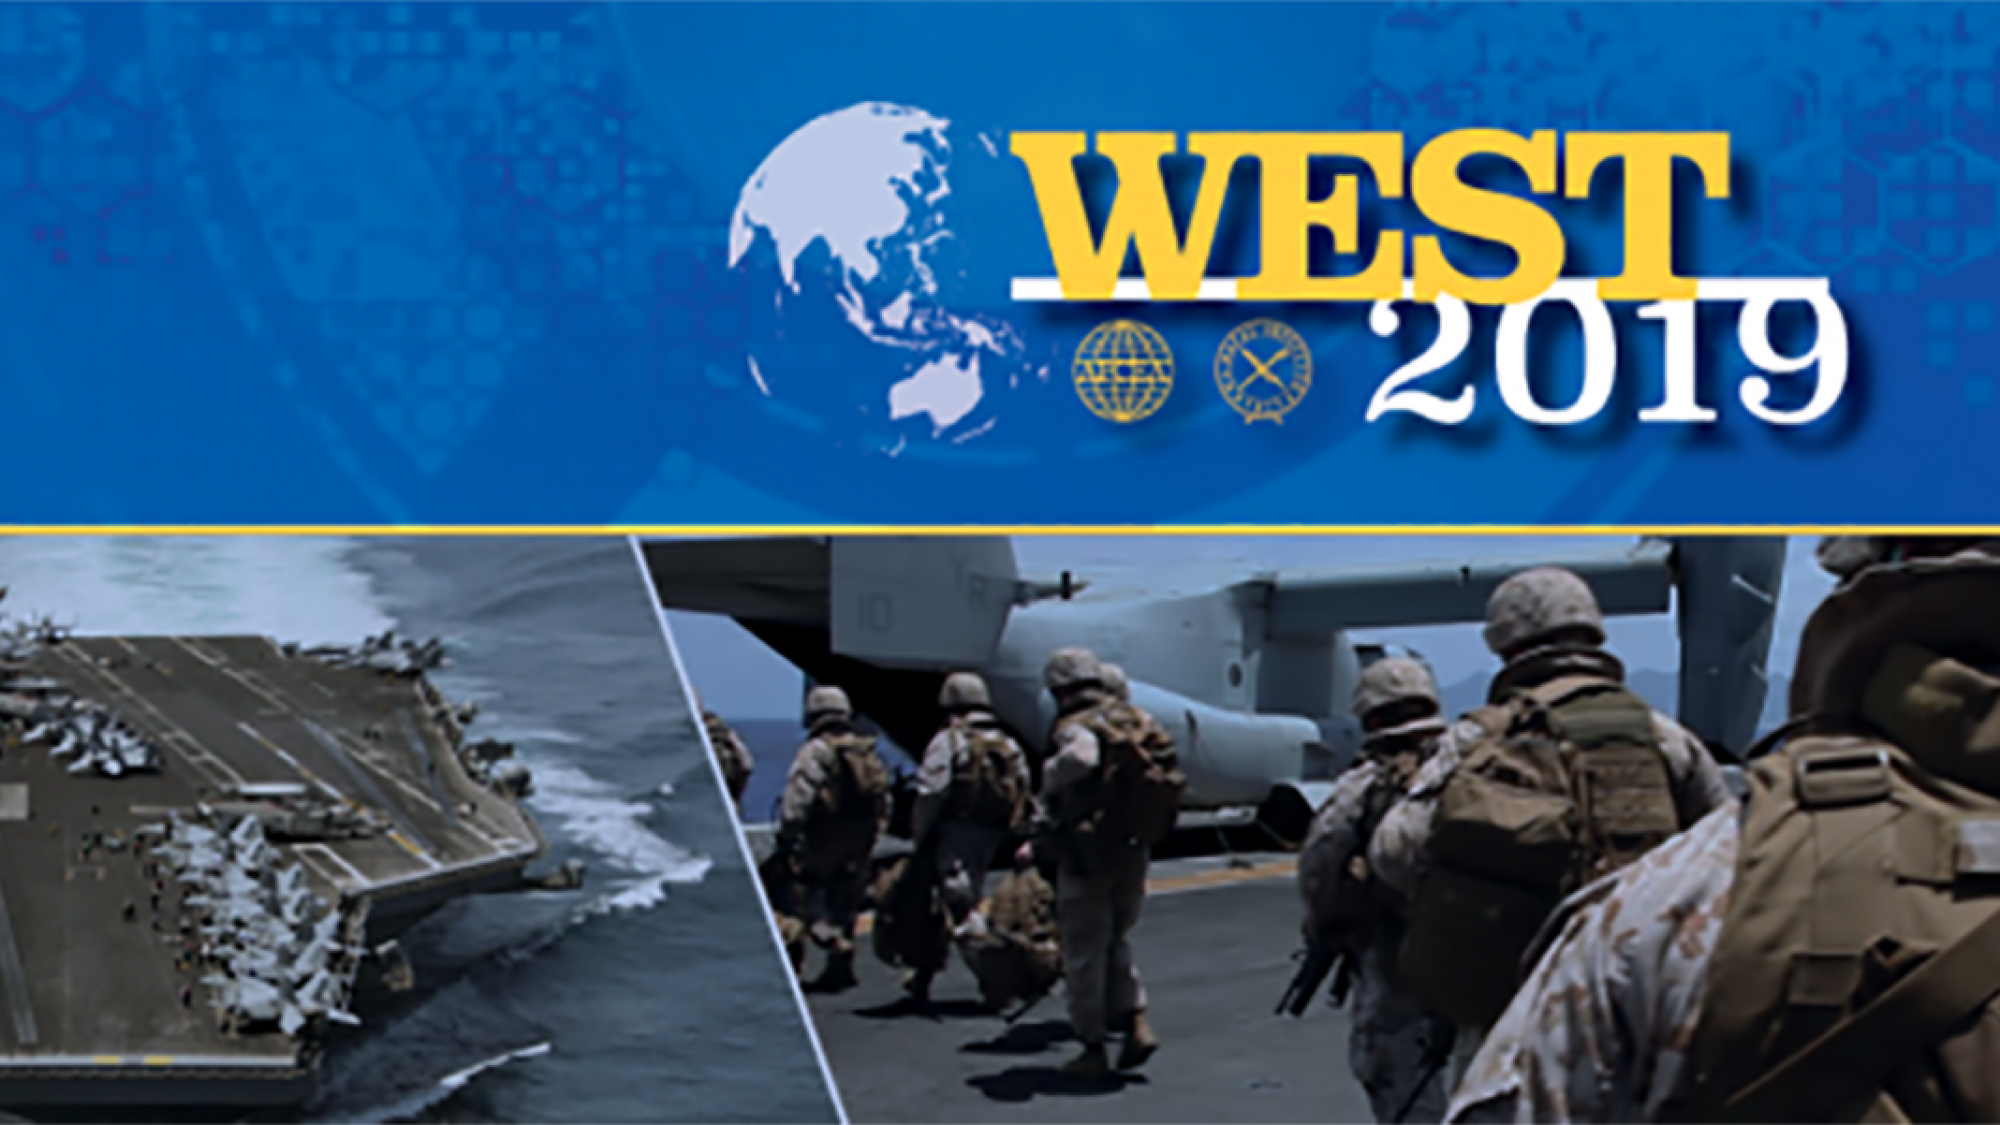 WEST2019 logo-featured image on post cropped